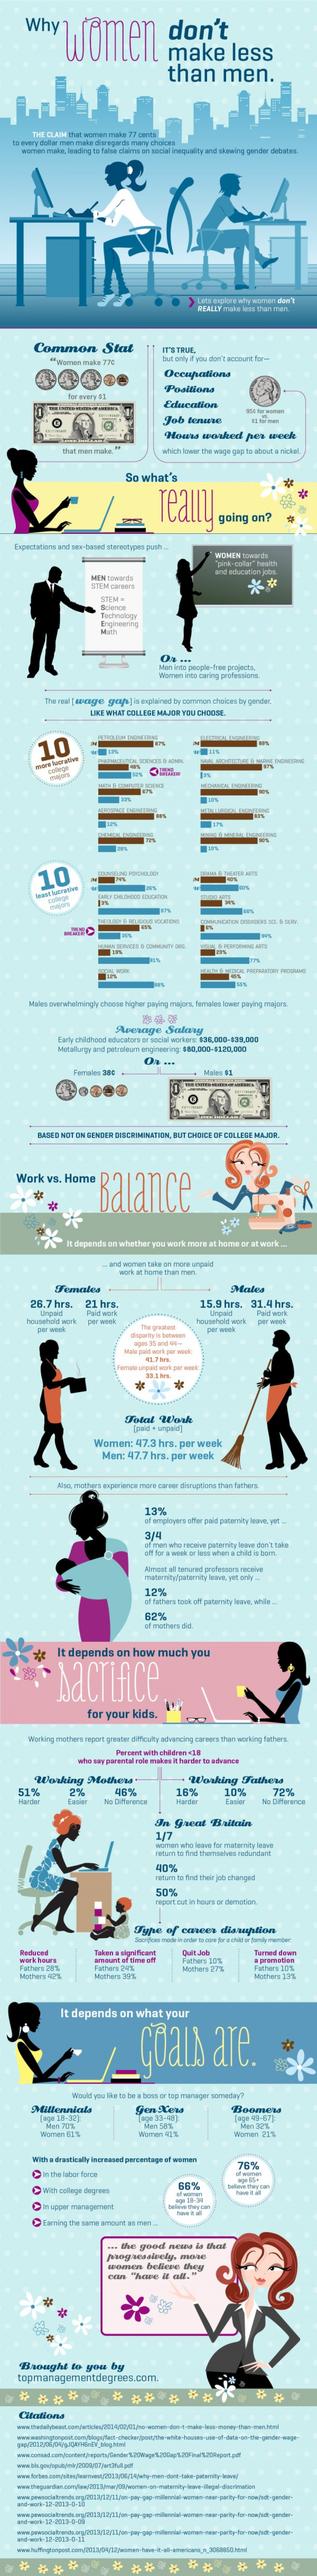 Why Women Don't Make Less than Men Infographic